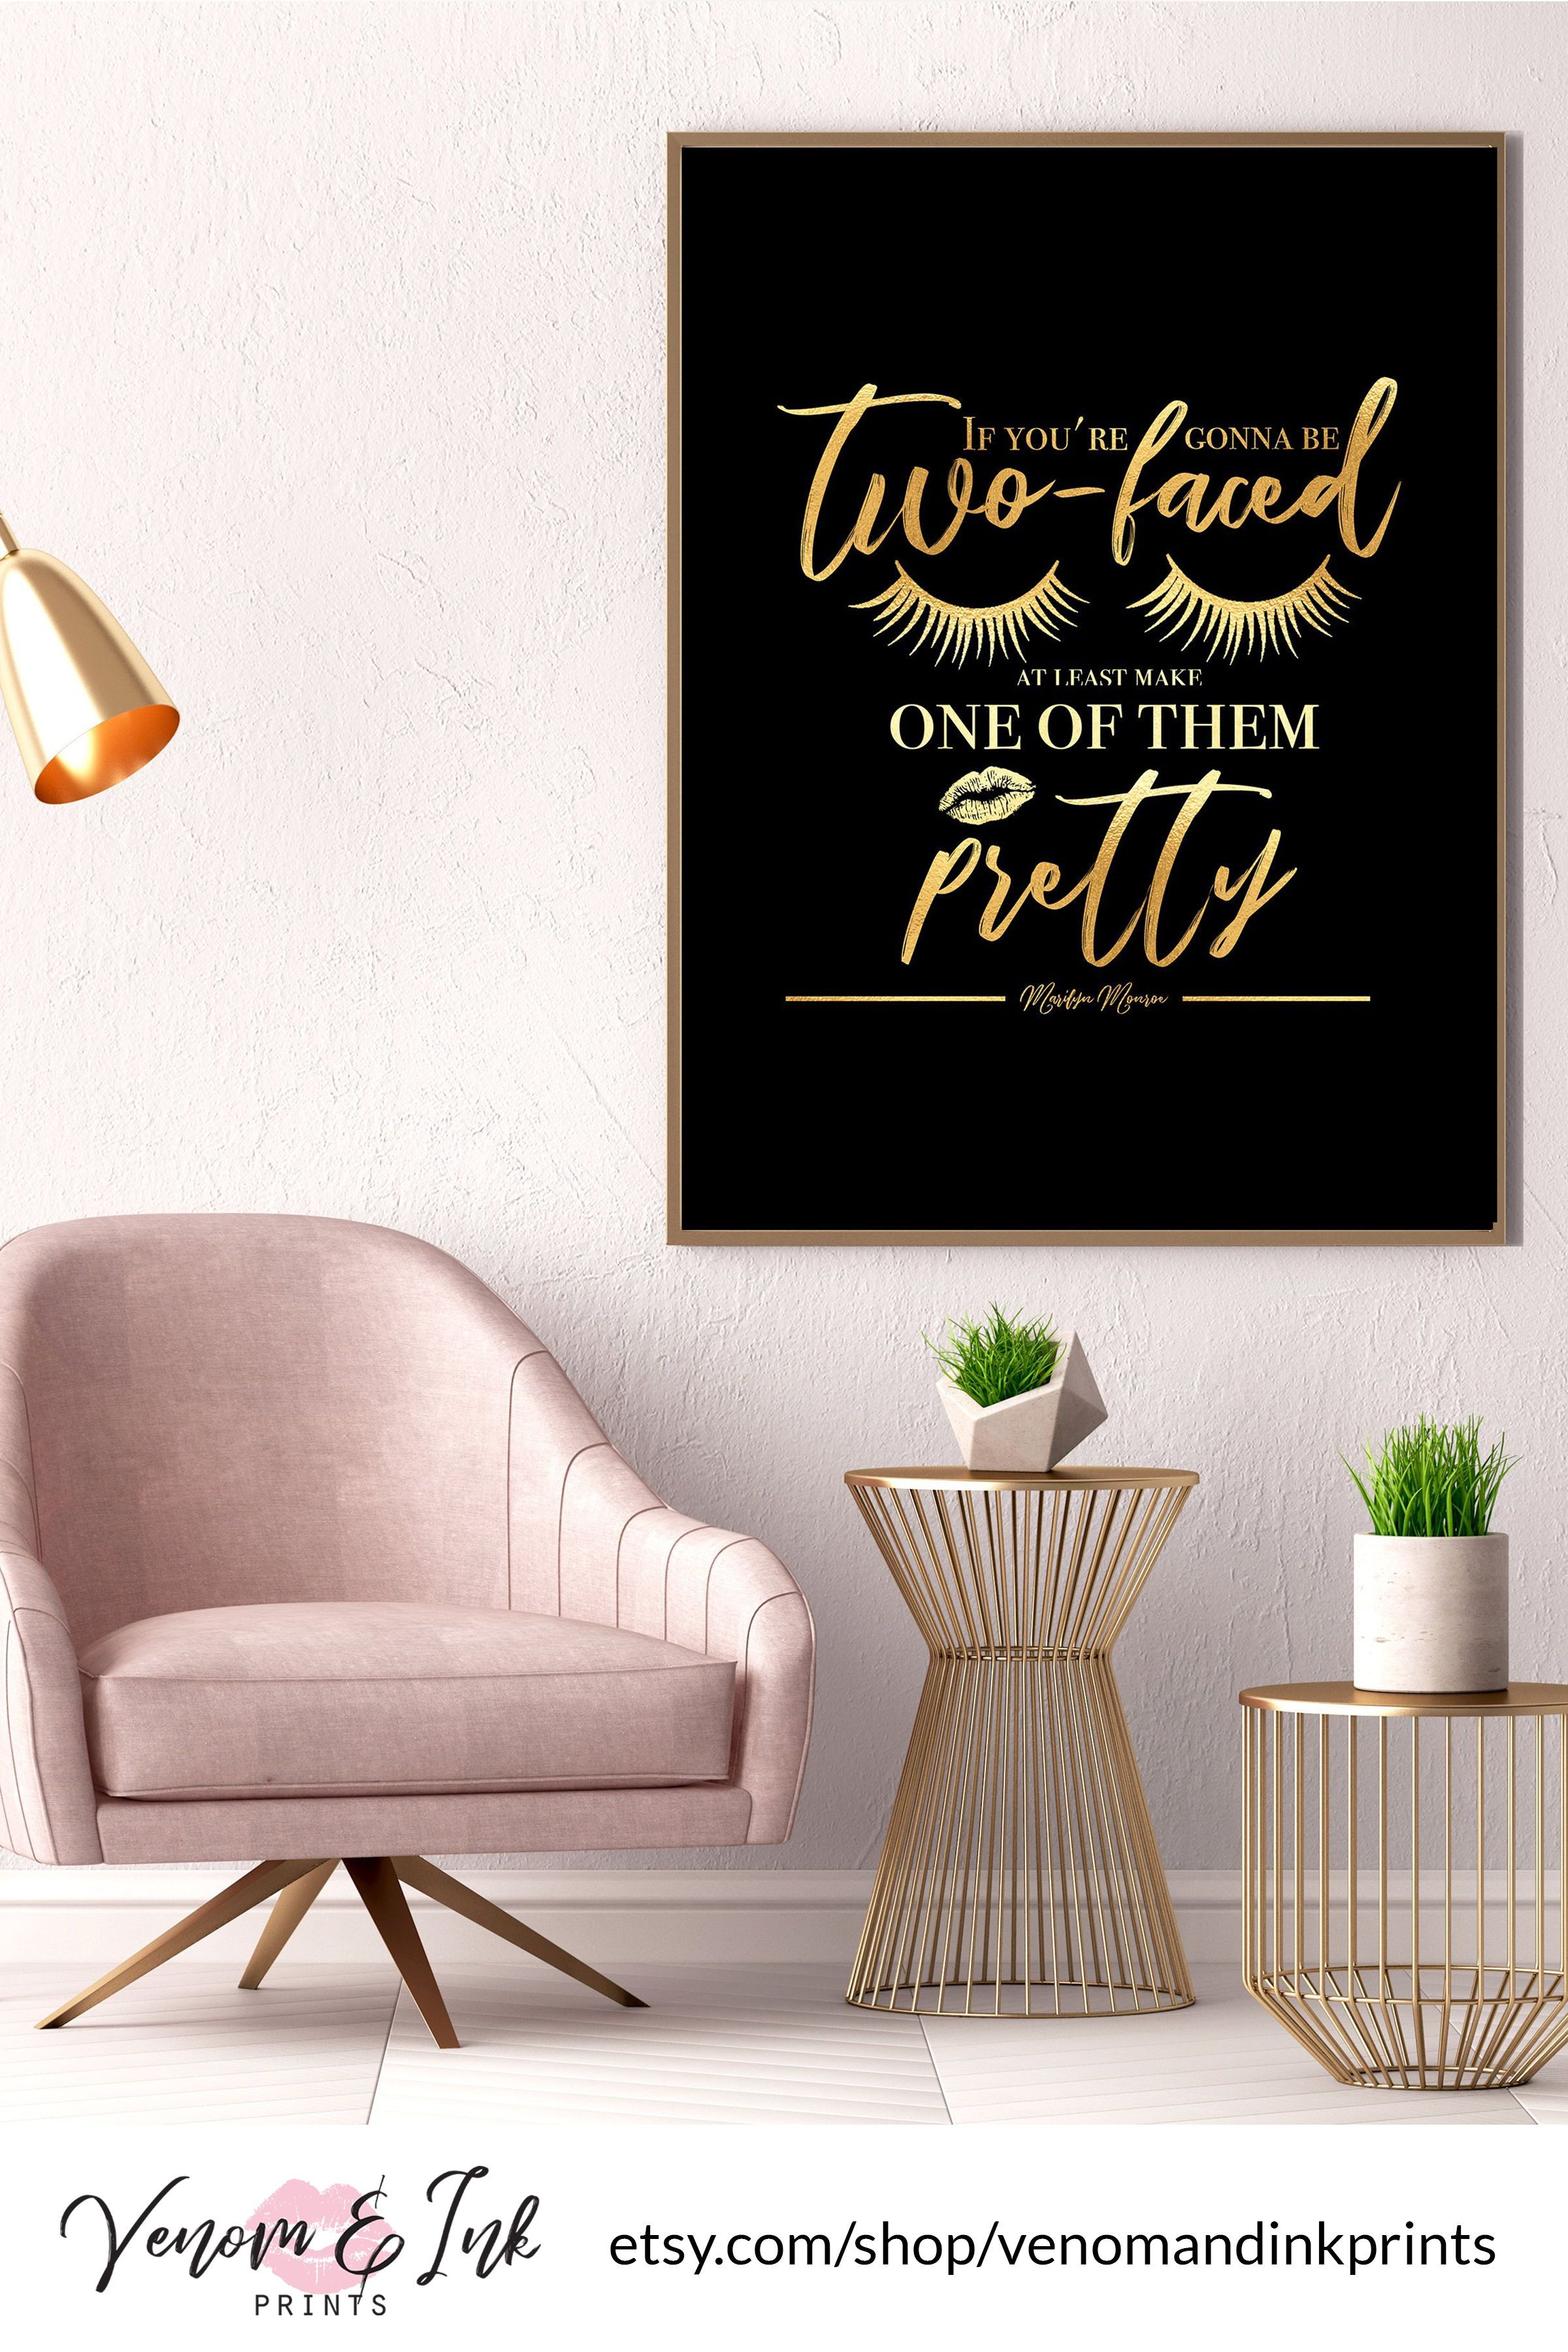 Marilyn Monroe Quote Wall Art Black And Gold Printable Black And Gold Print Black And Gold Decor Black And Gold Wall Art Gold Foil Print Gold Decor Gold Wall Art Wall Art